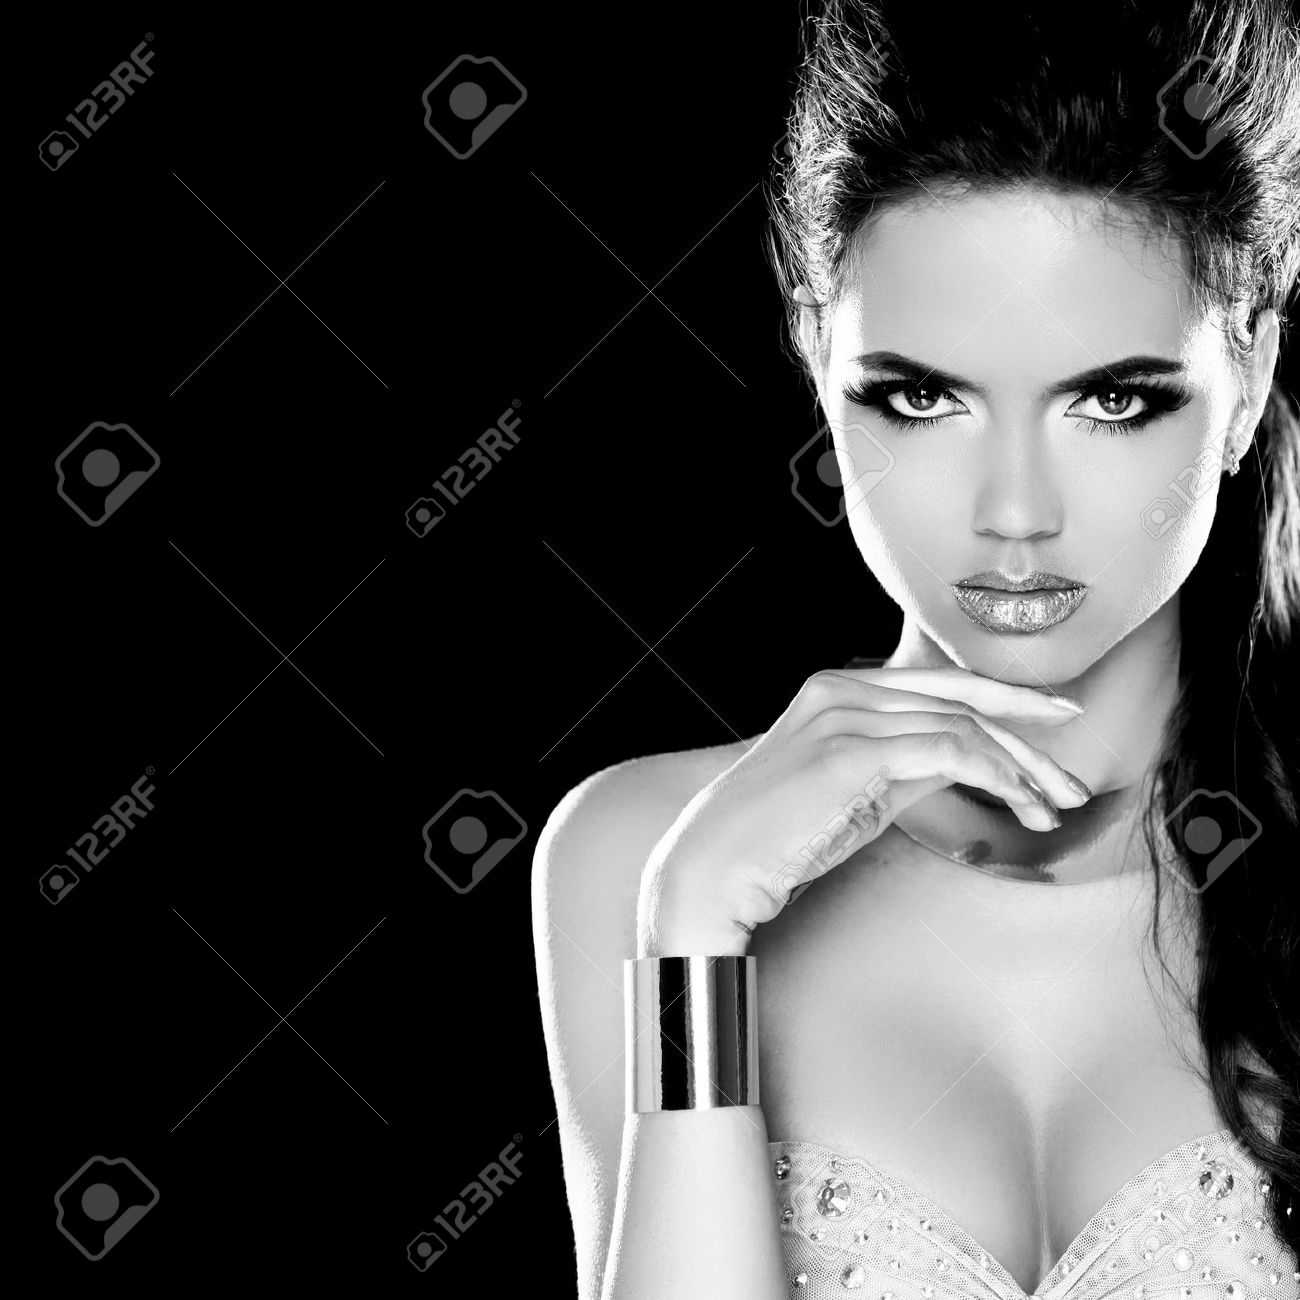 Stock photo vogue style glamour lady fashion beauty girl gorgeous woman portrait black and white photo